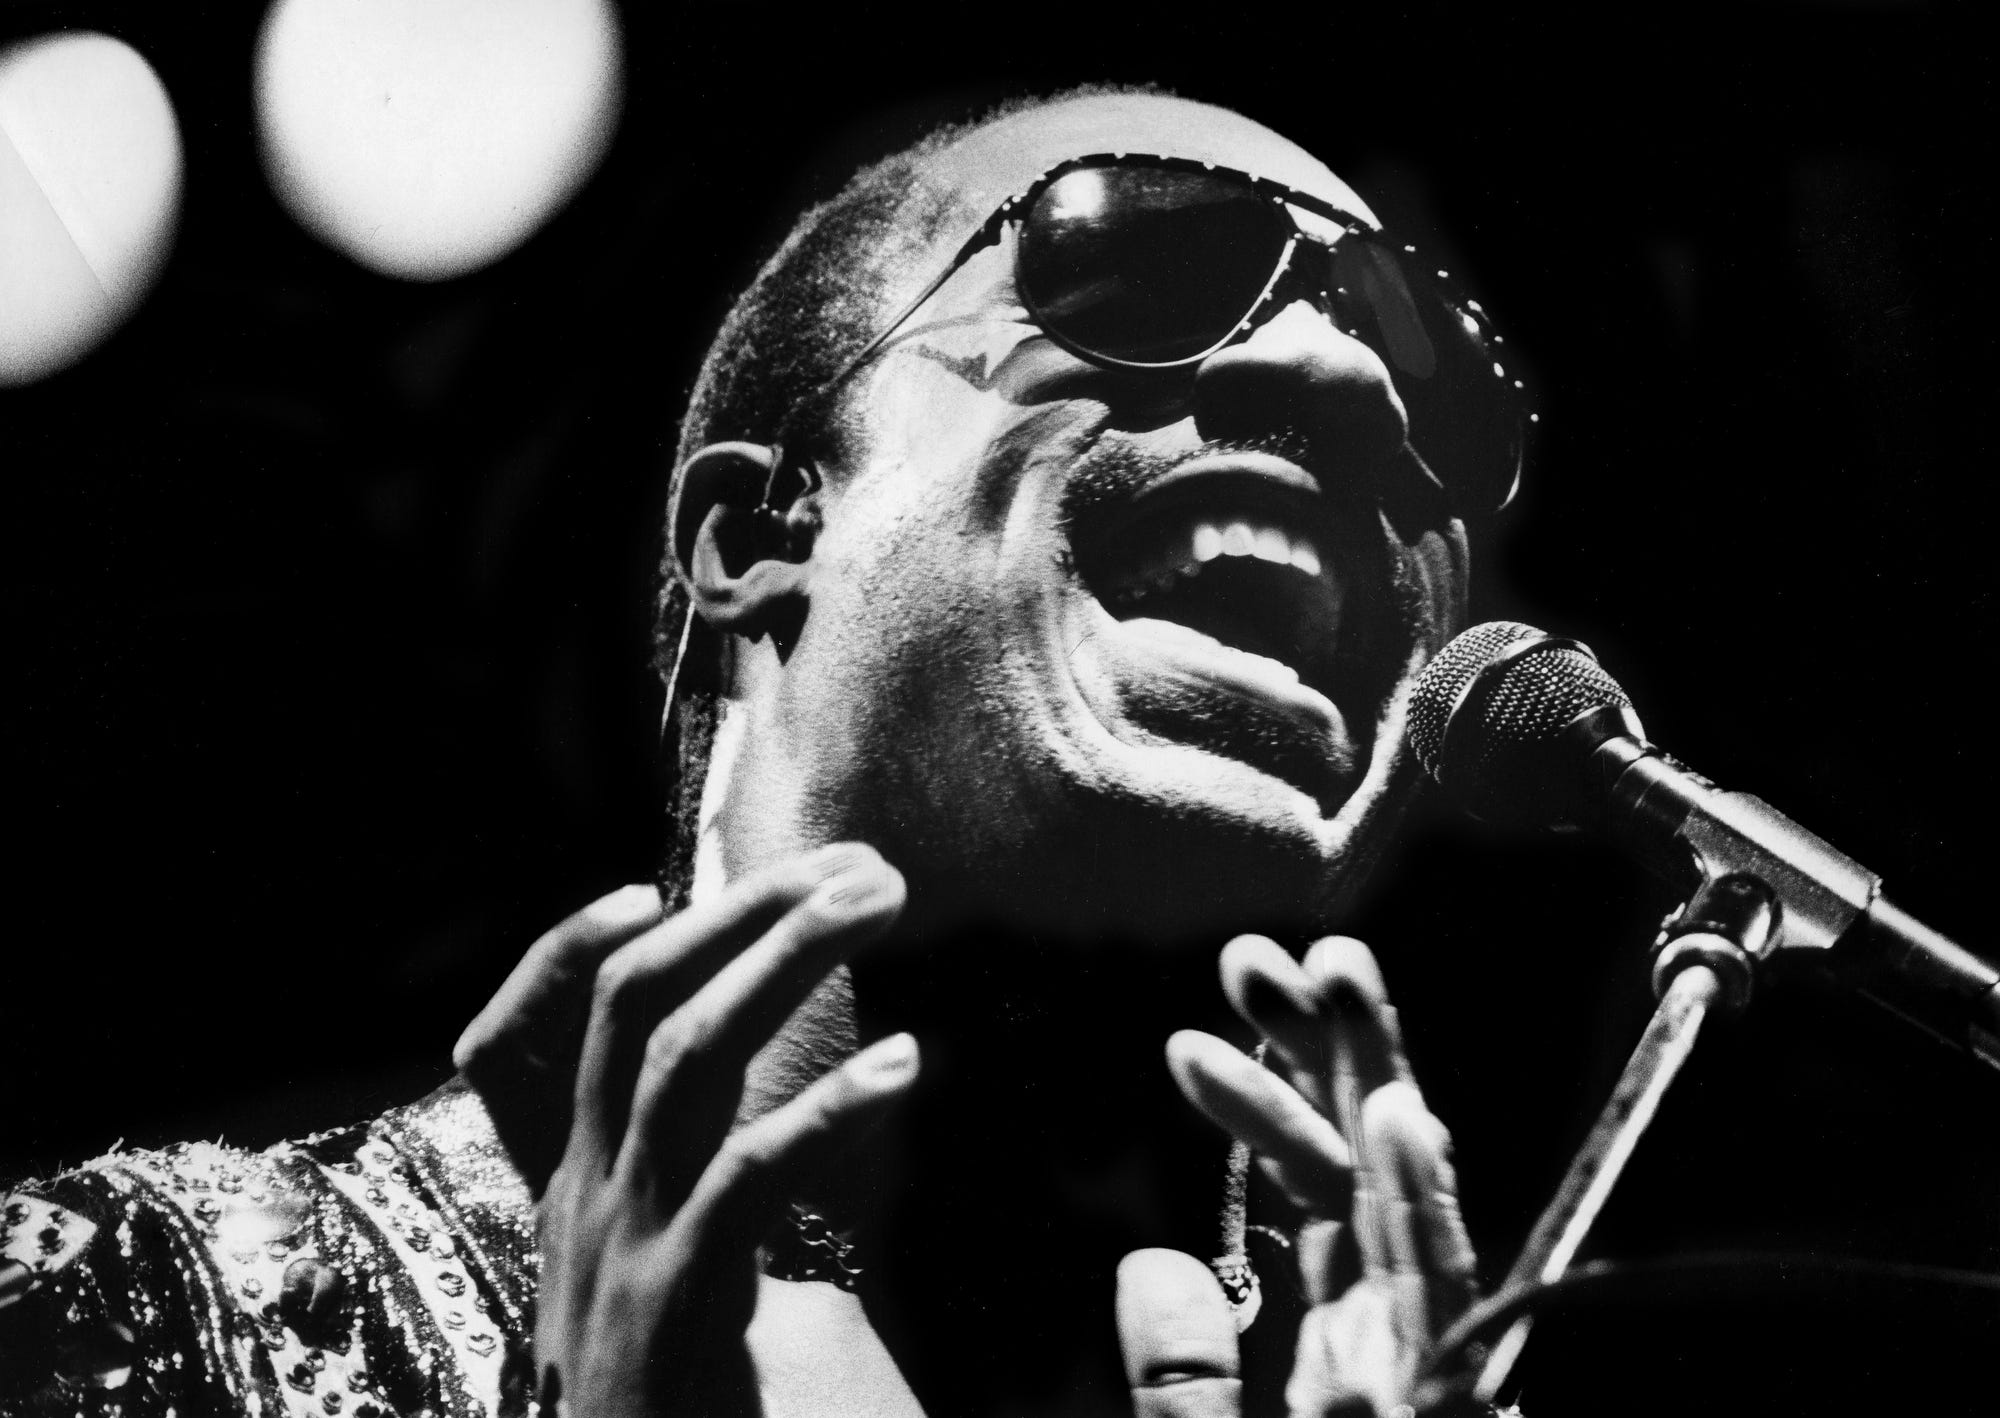 Pop music superstar Stevie Wonder is delivering a stunning all-out performance in his marathon two-part concert before more than 10,000 fans at Middle Tennessee State University's Murphy Center in Murfreesboro Sept. 14, 1986.